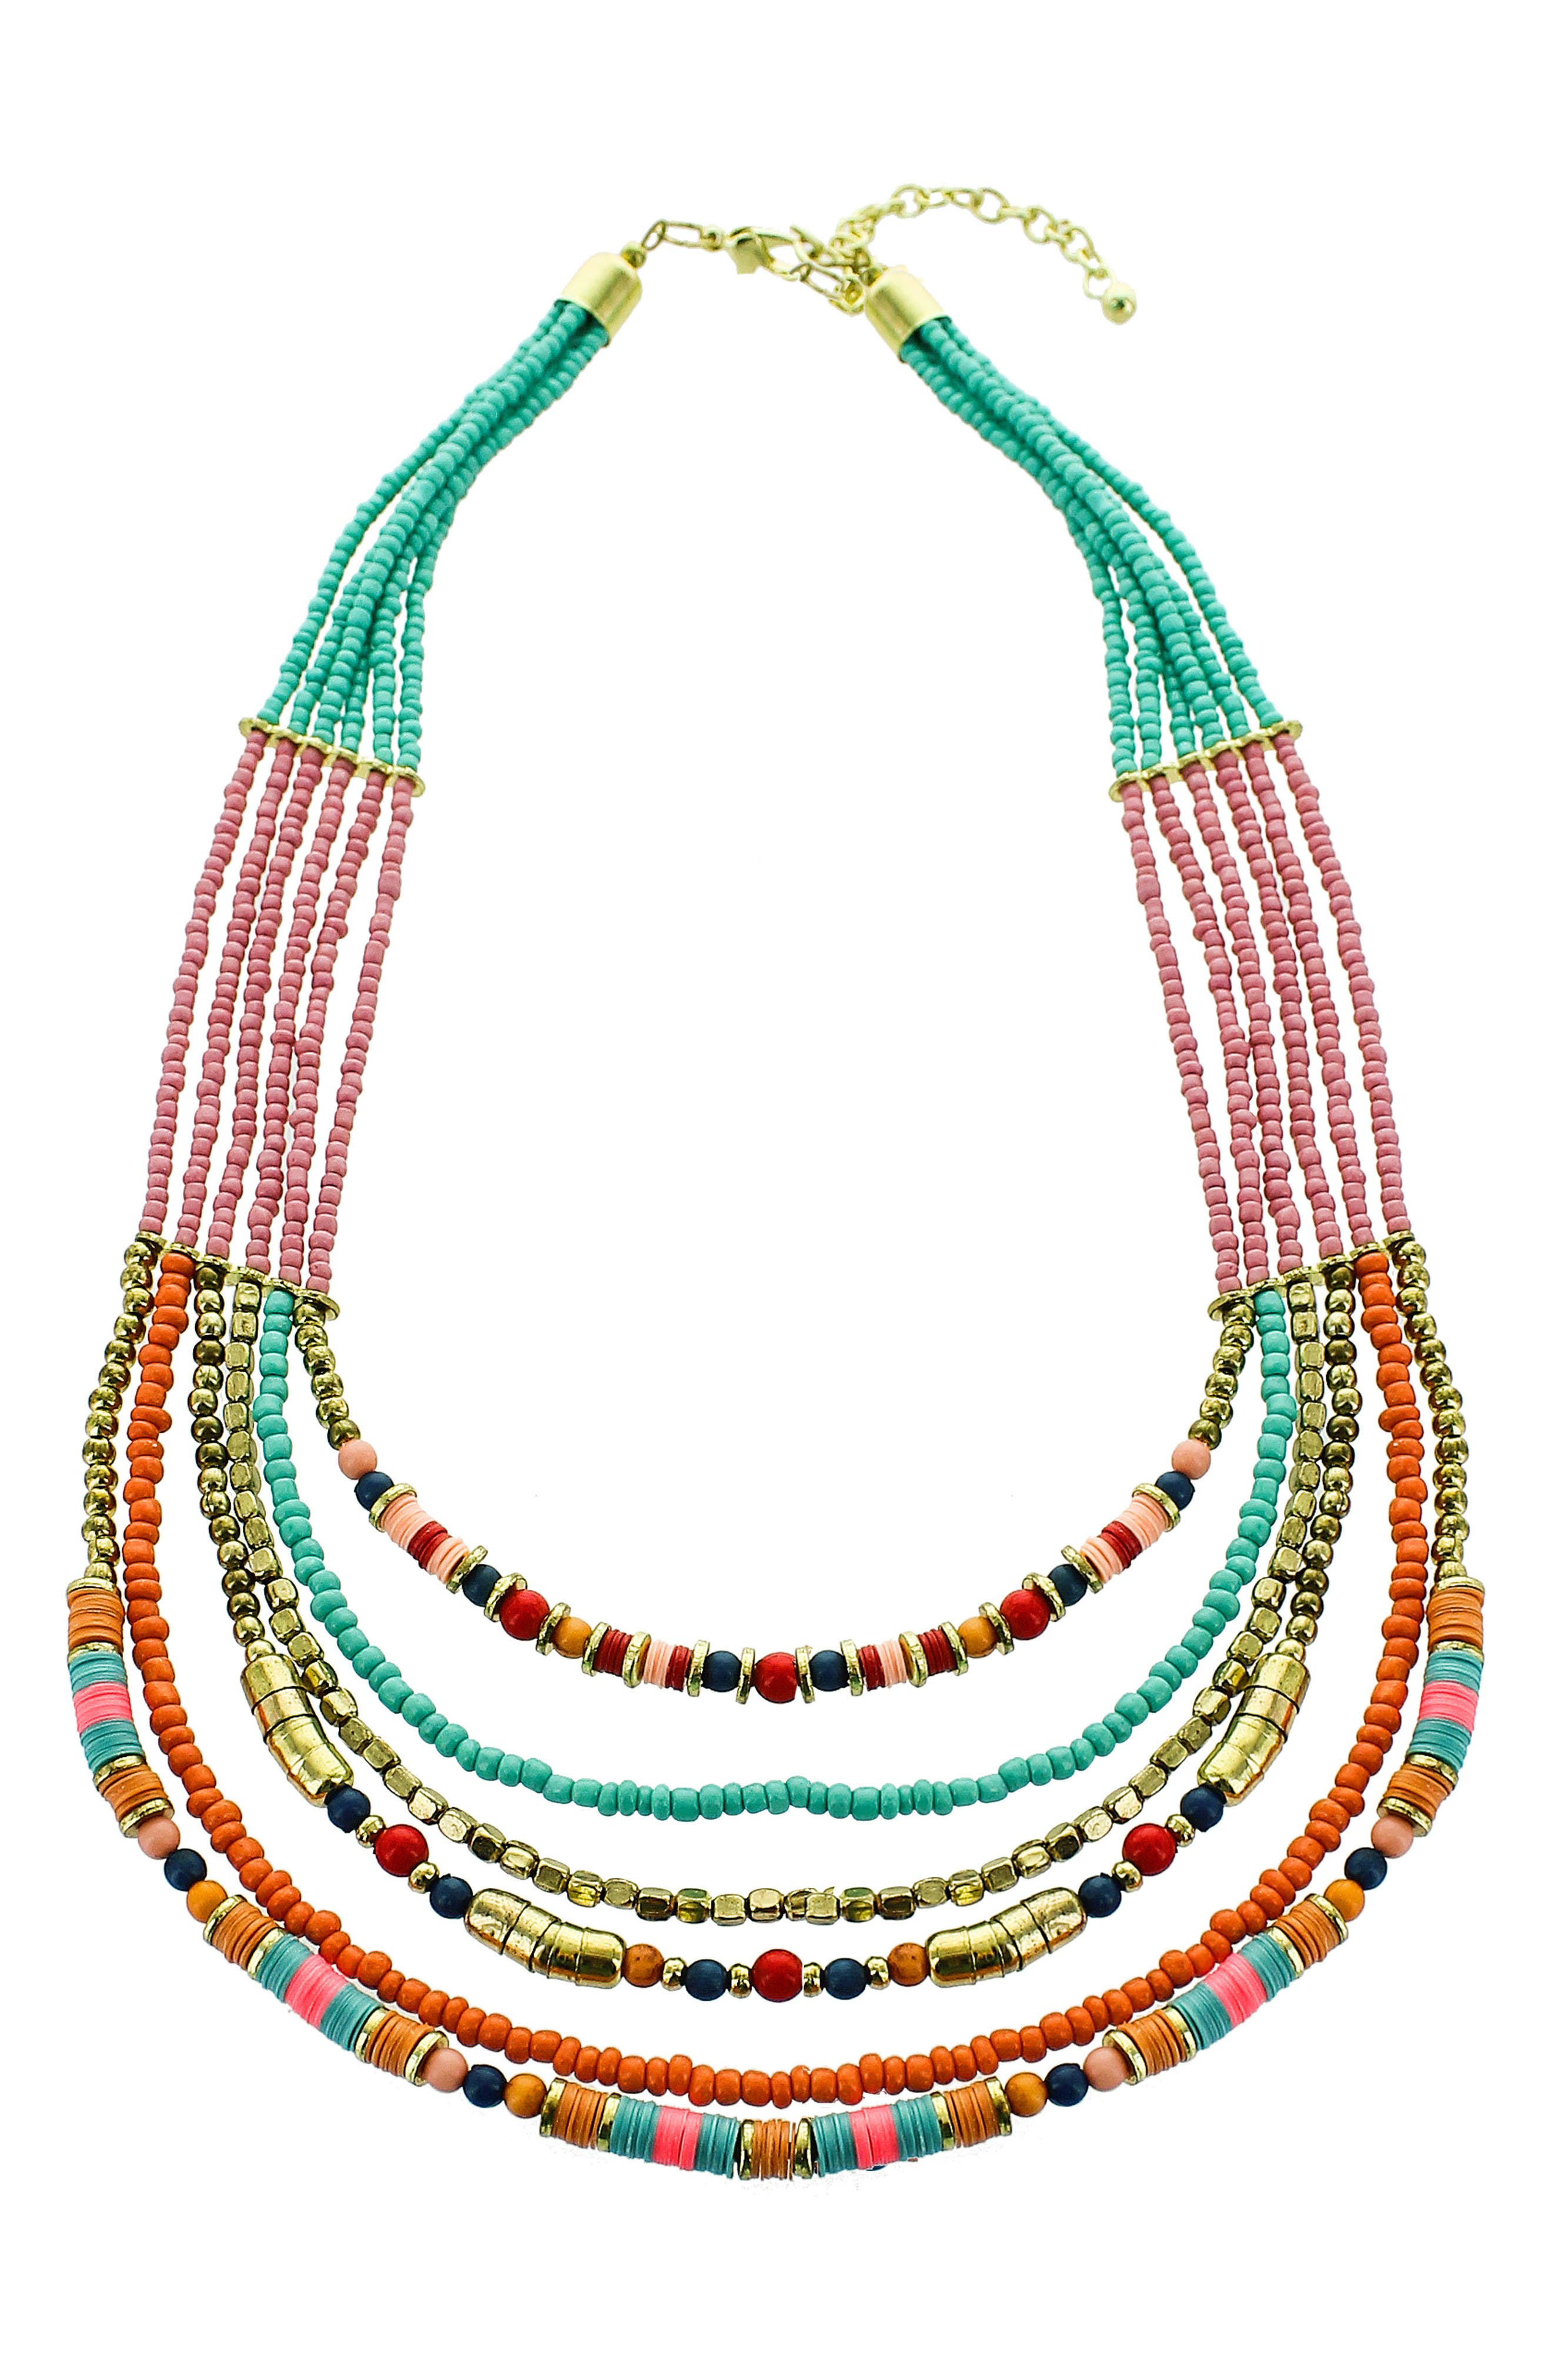 Multistrand Seed Bead Necklace,                         Main,                         color, 400